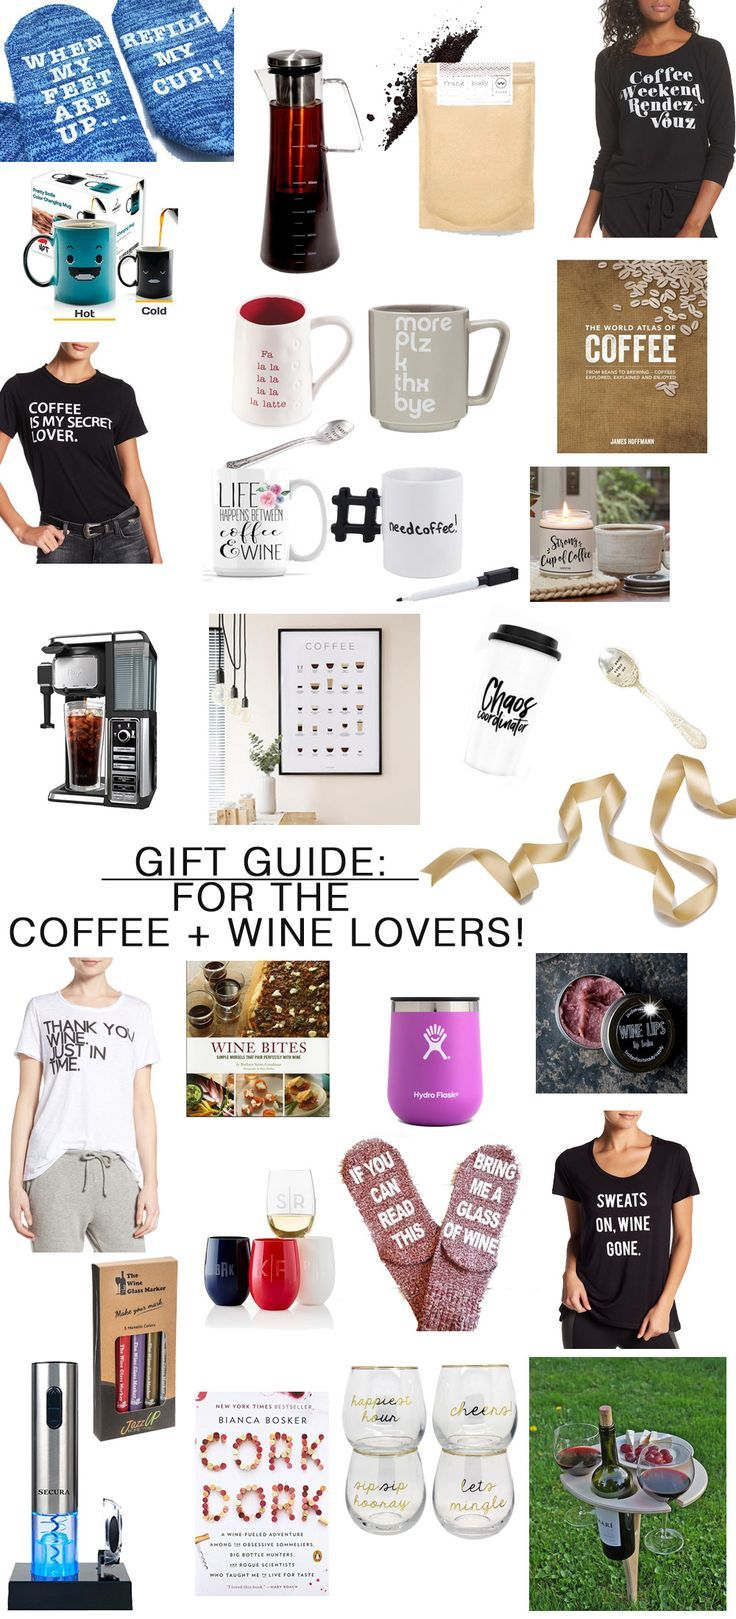 drinking gifts guide | gift ideas | pinterest | gifts, gift guide